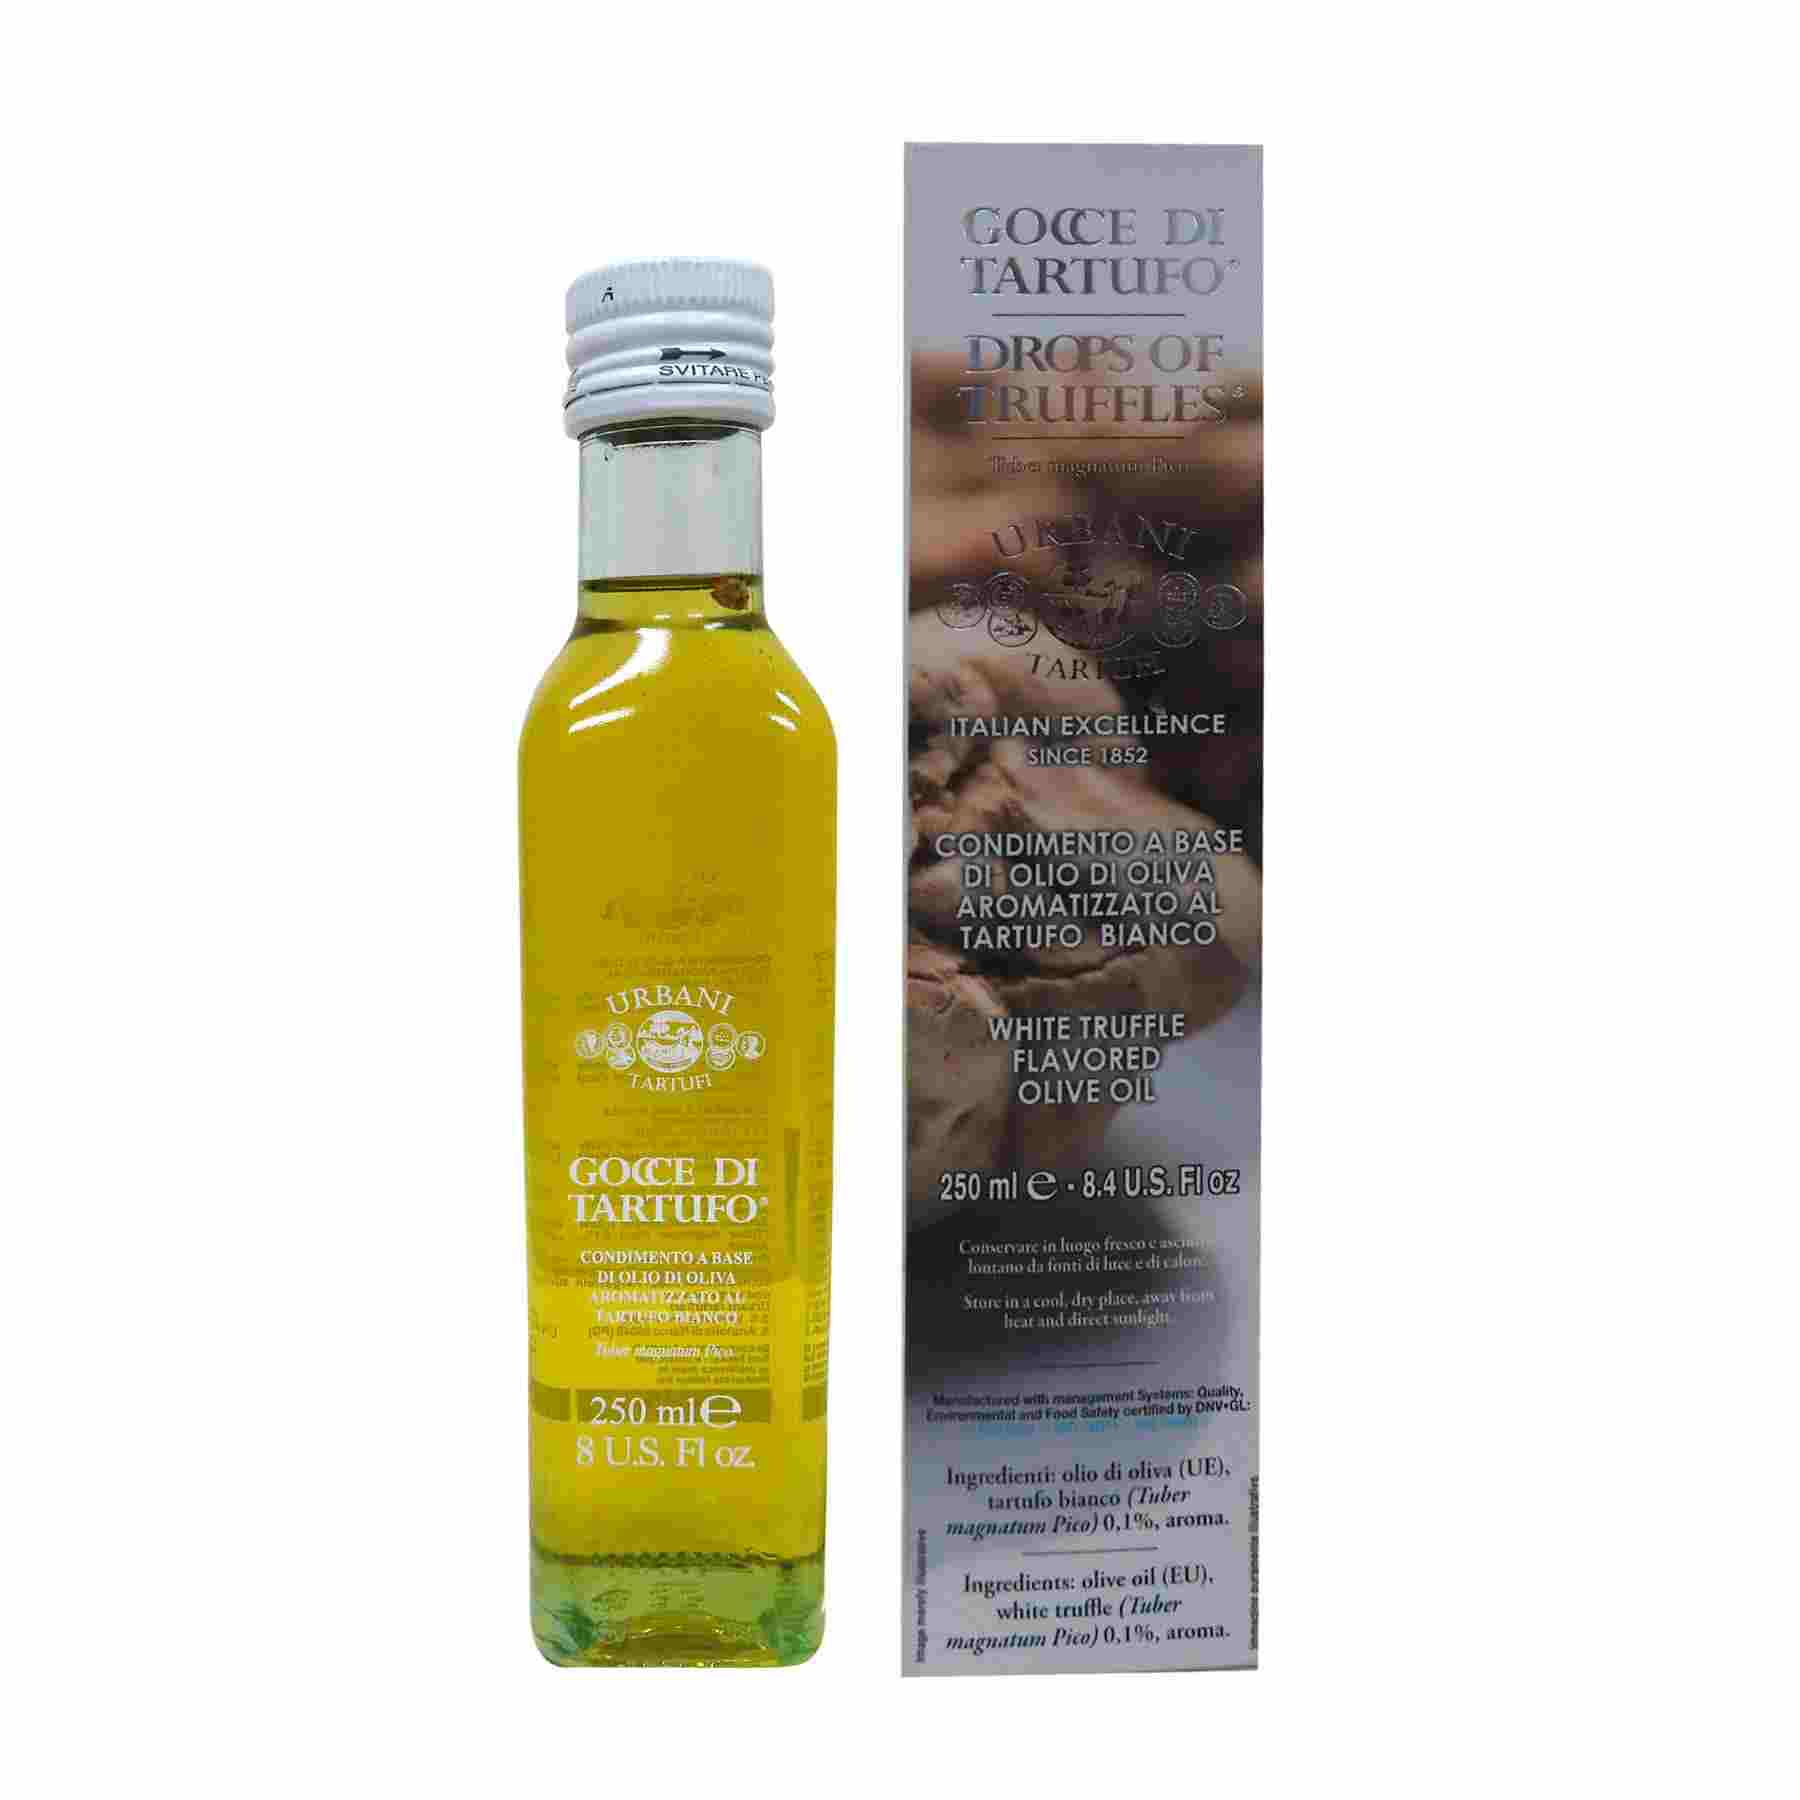 Image White Truffle Flavored Olive Oil 白松露油 250ml